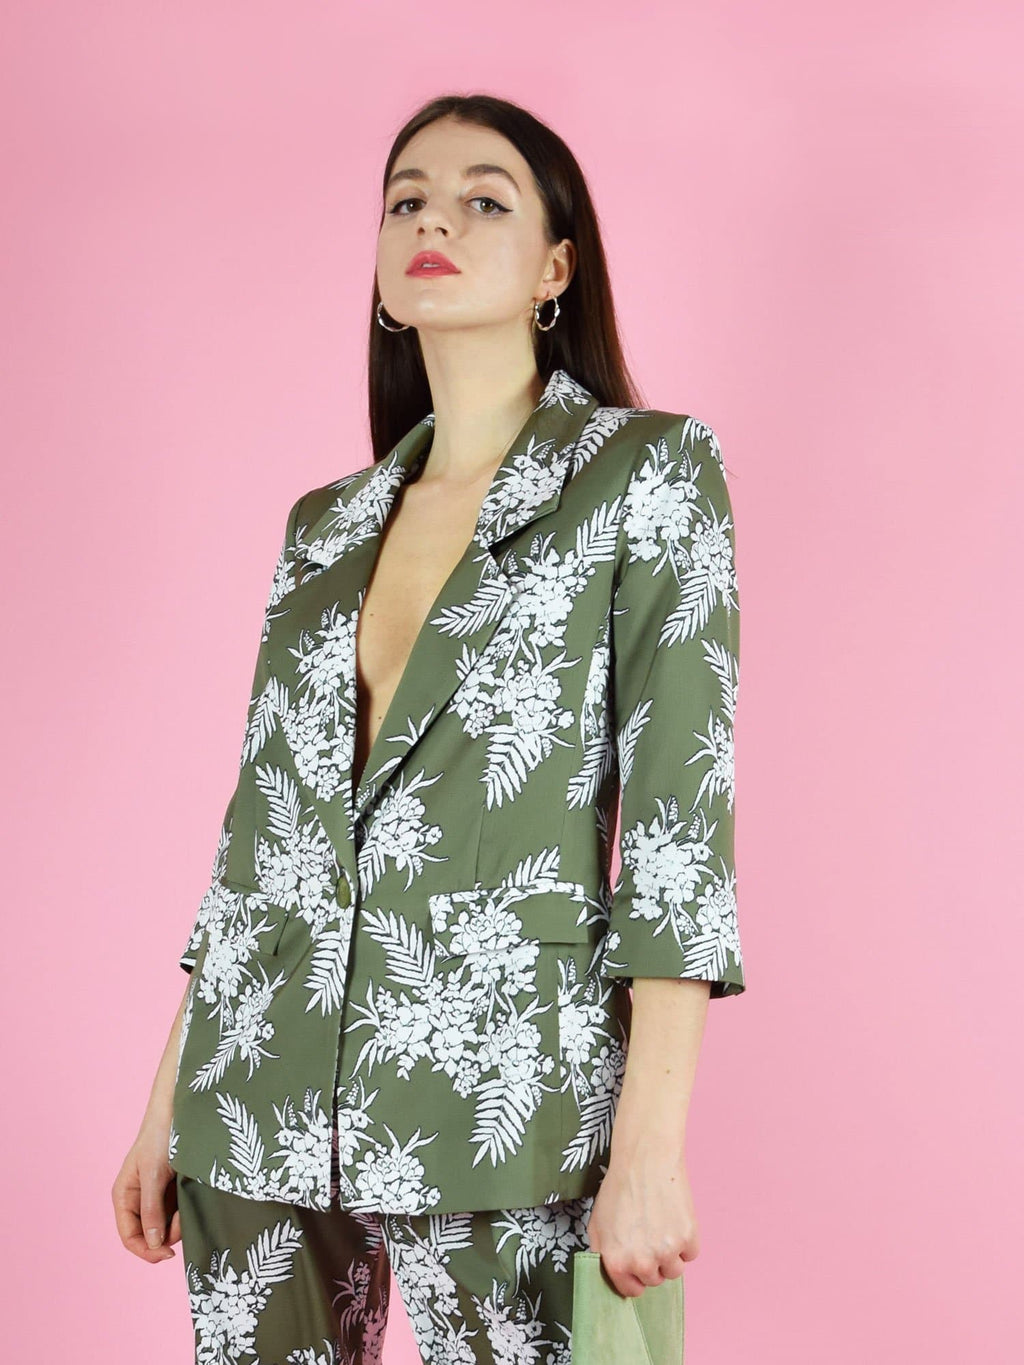 The girlboss sustainable longline blazer by blonde gone rogue. The blazer has a loose, oversized fit and two front pockets.